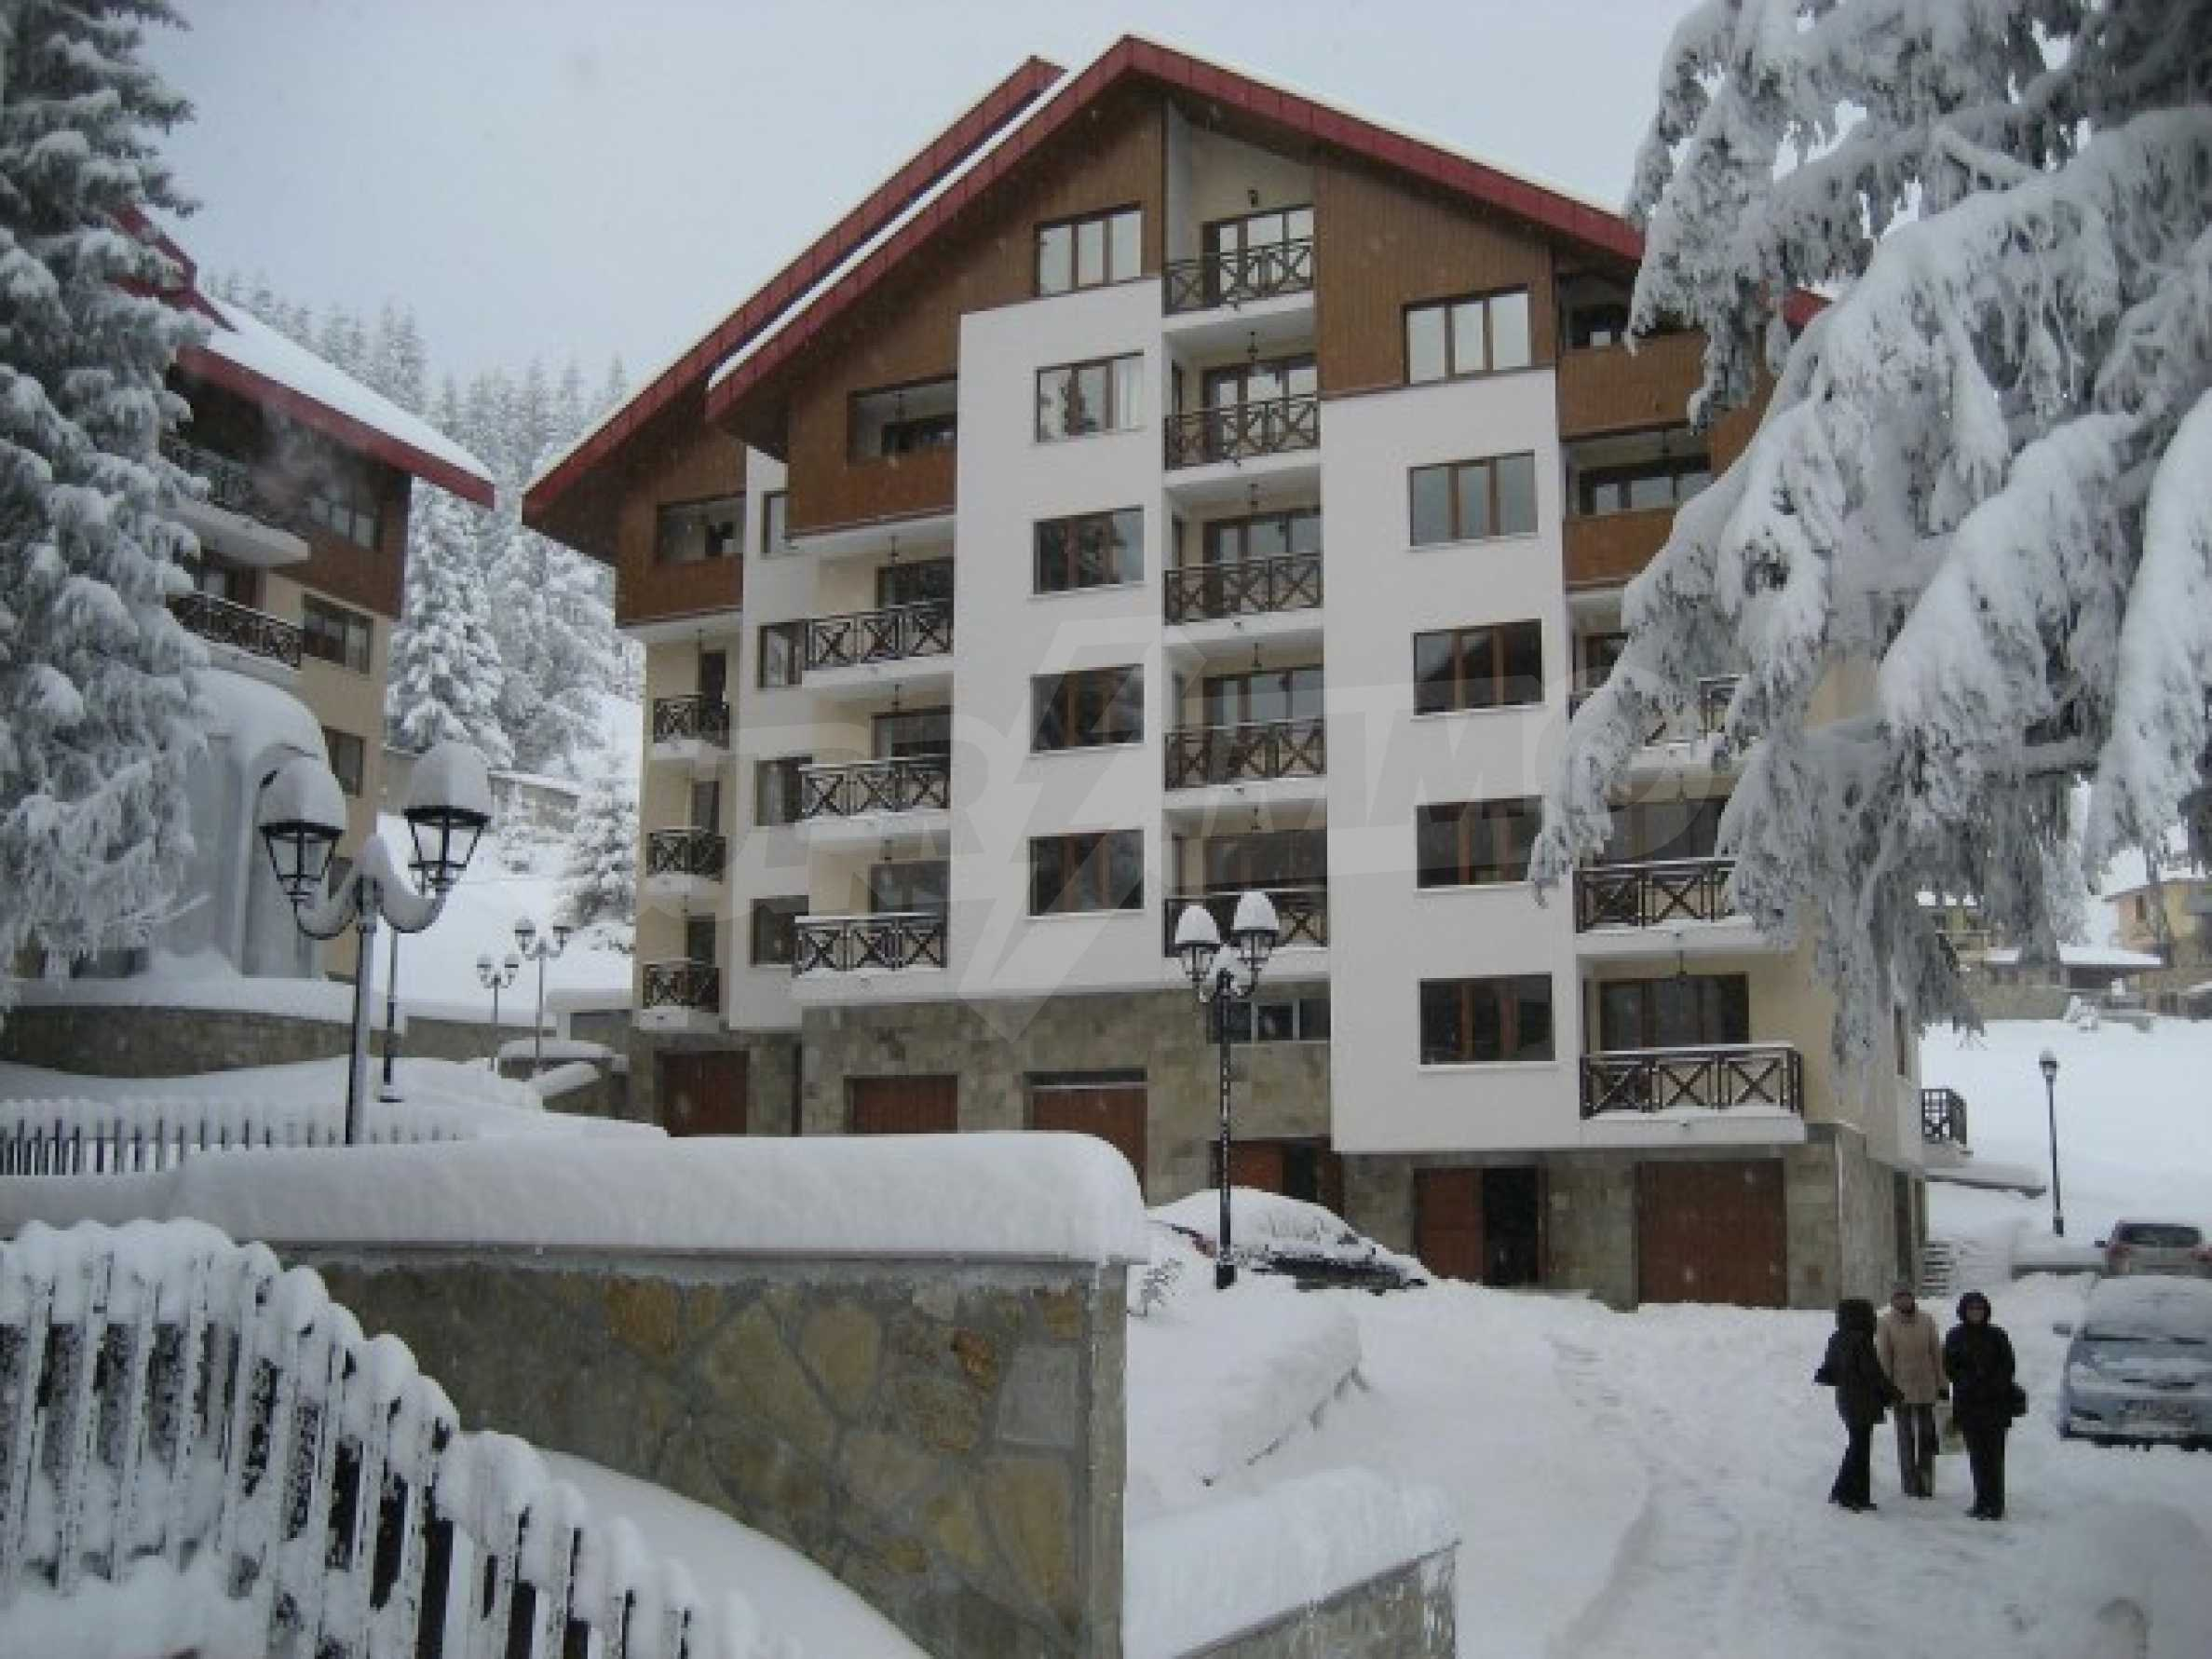 Property in a ski resort